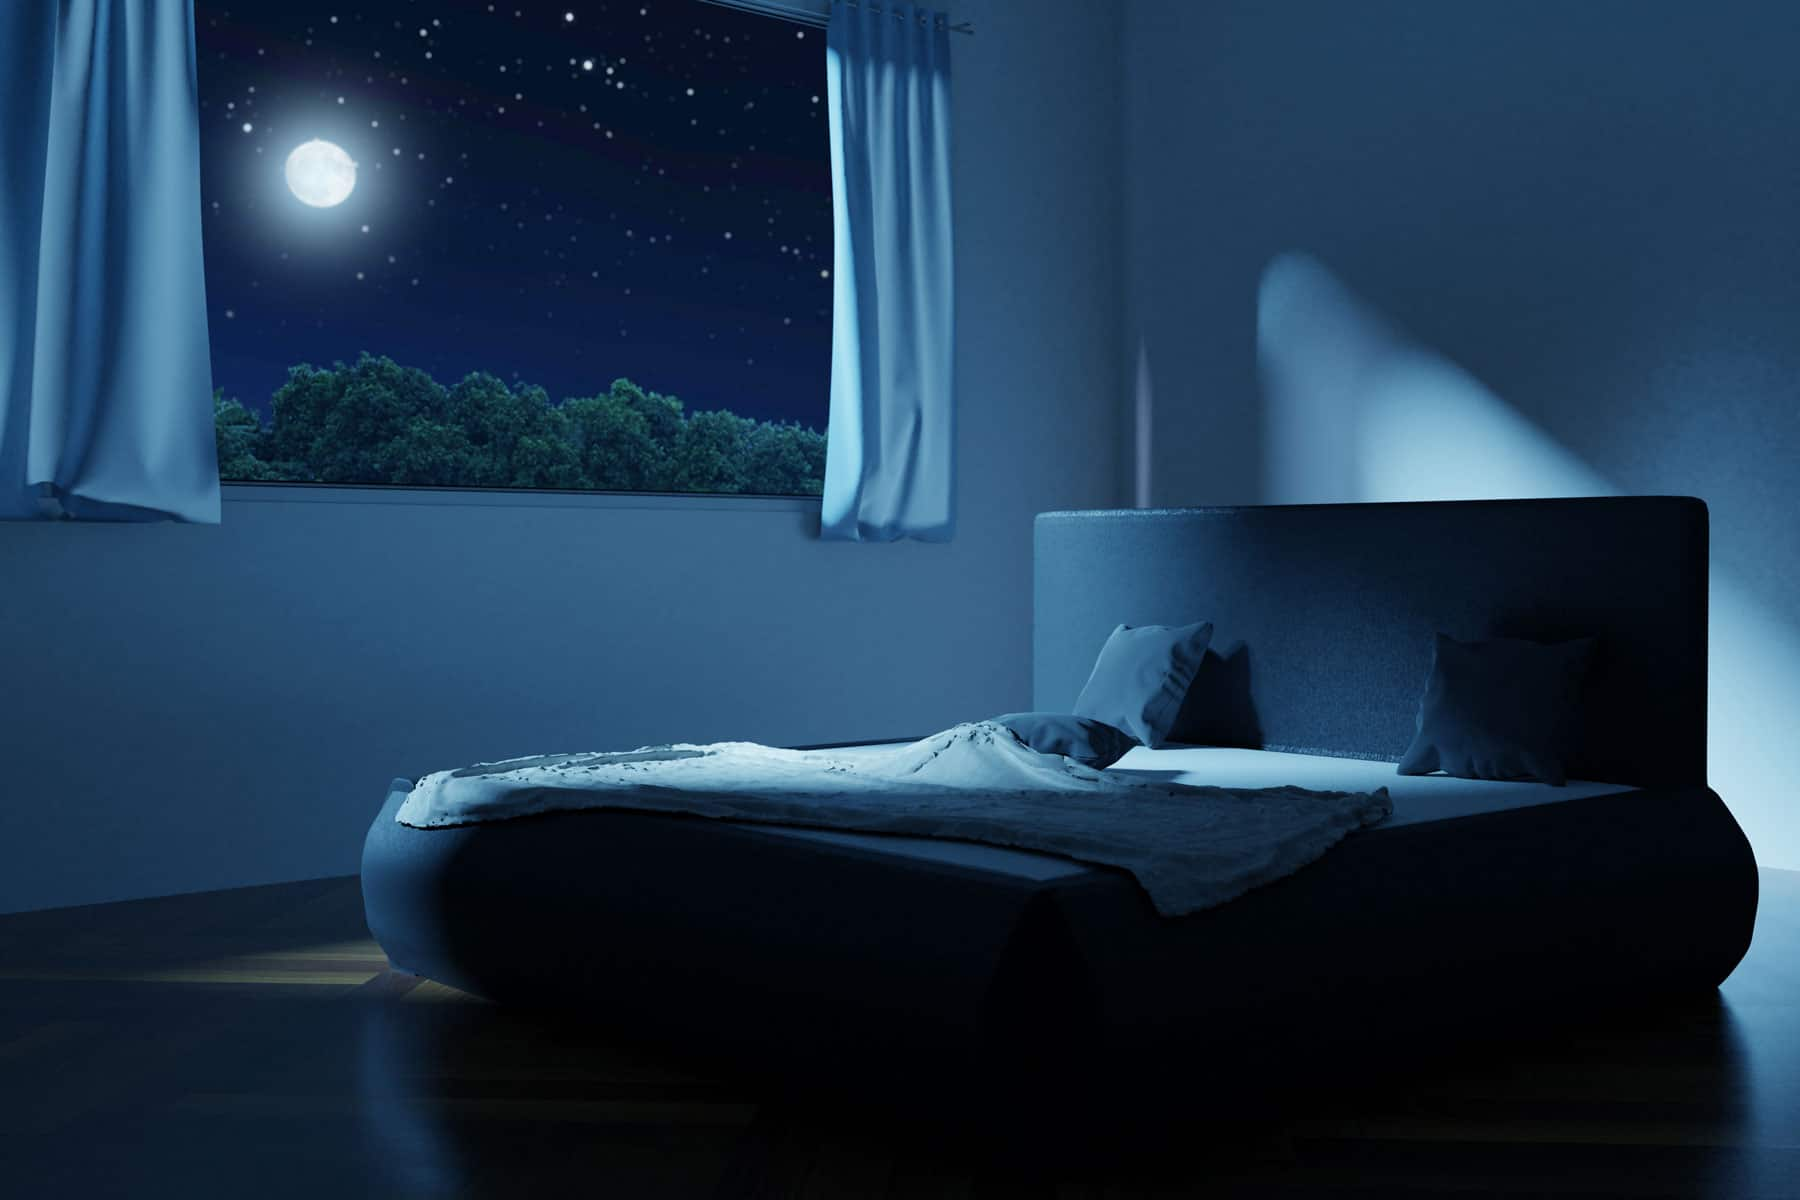 bedroom in the night